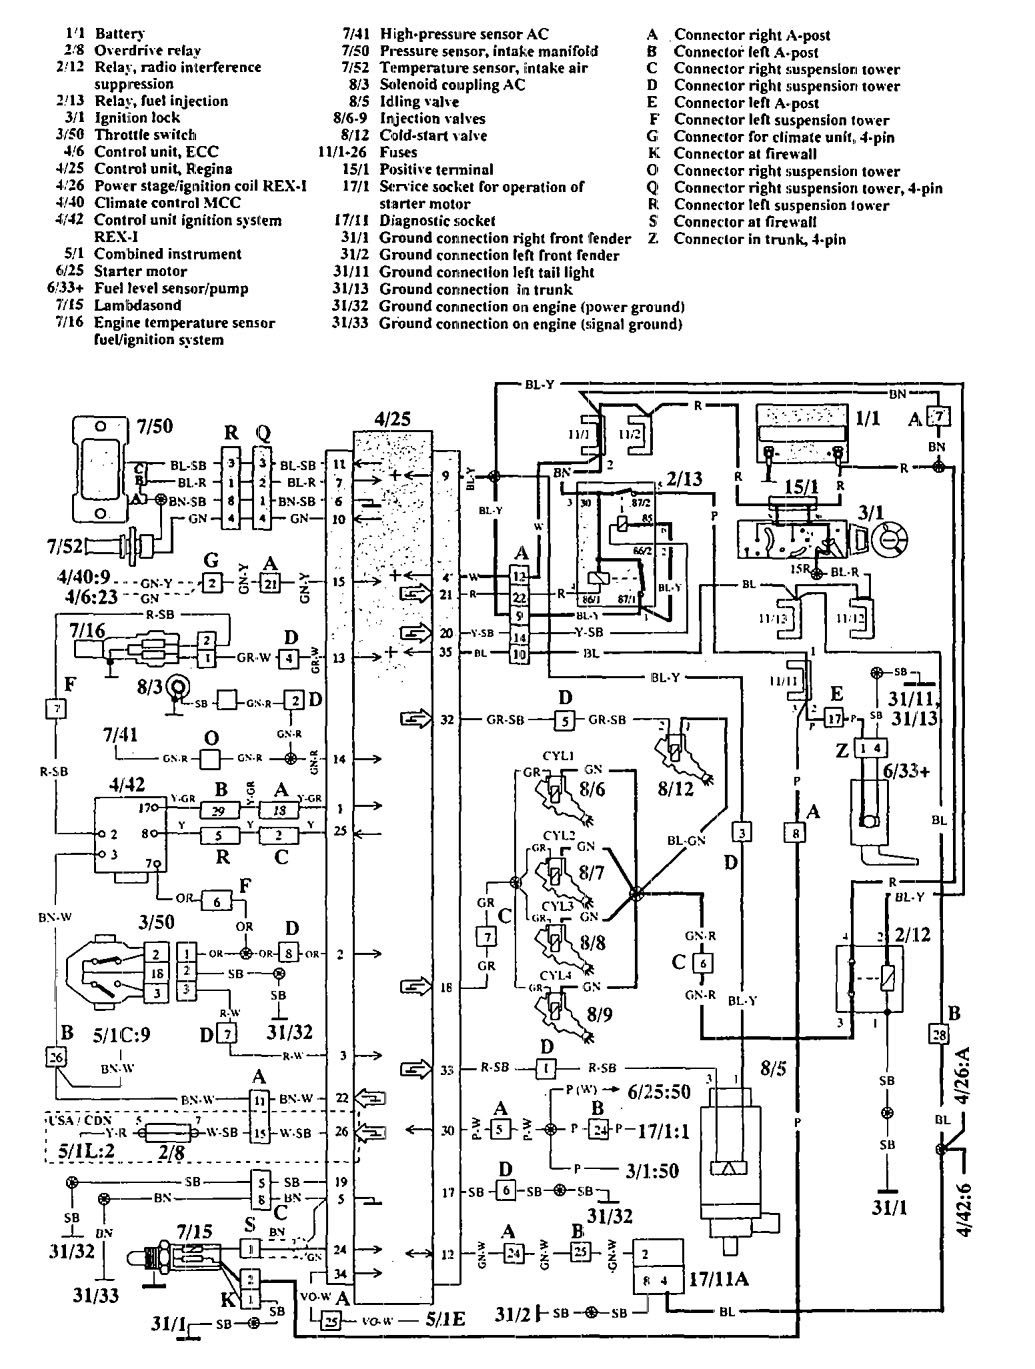 1992 940 gl wiring diagram manual e book asco 940 wiring diagram [ 1035 x 1369 Pixel ]